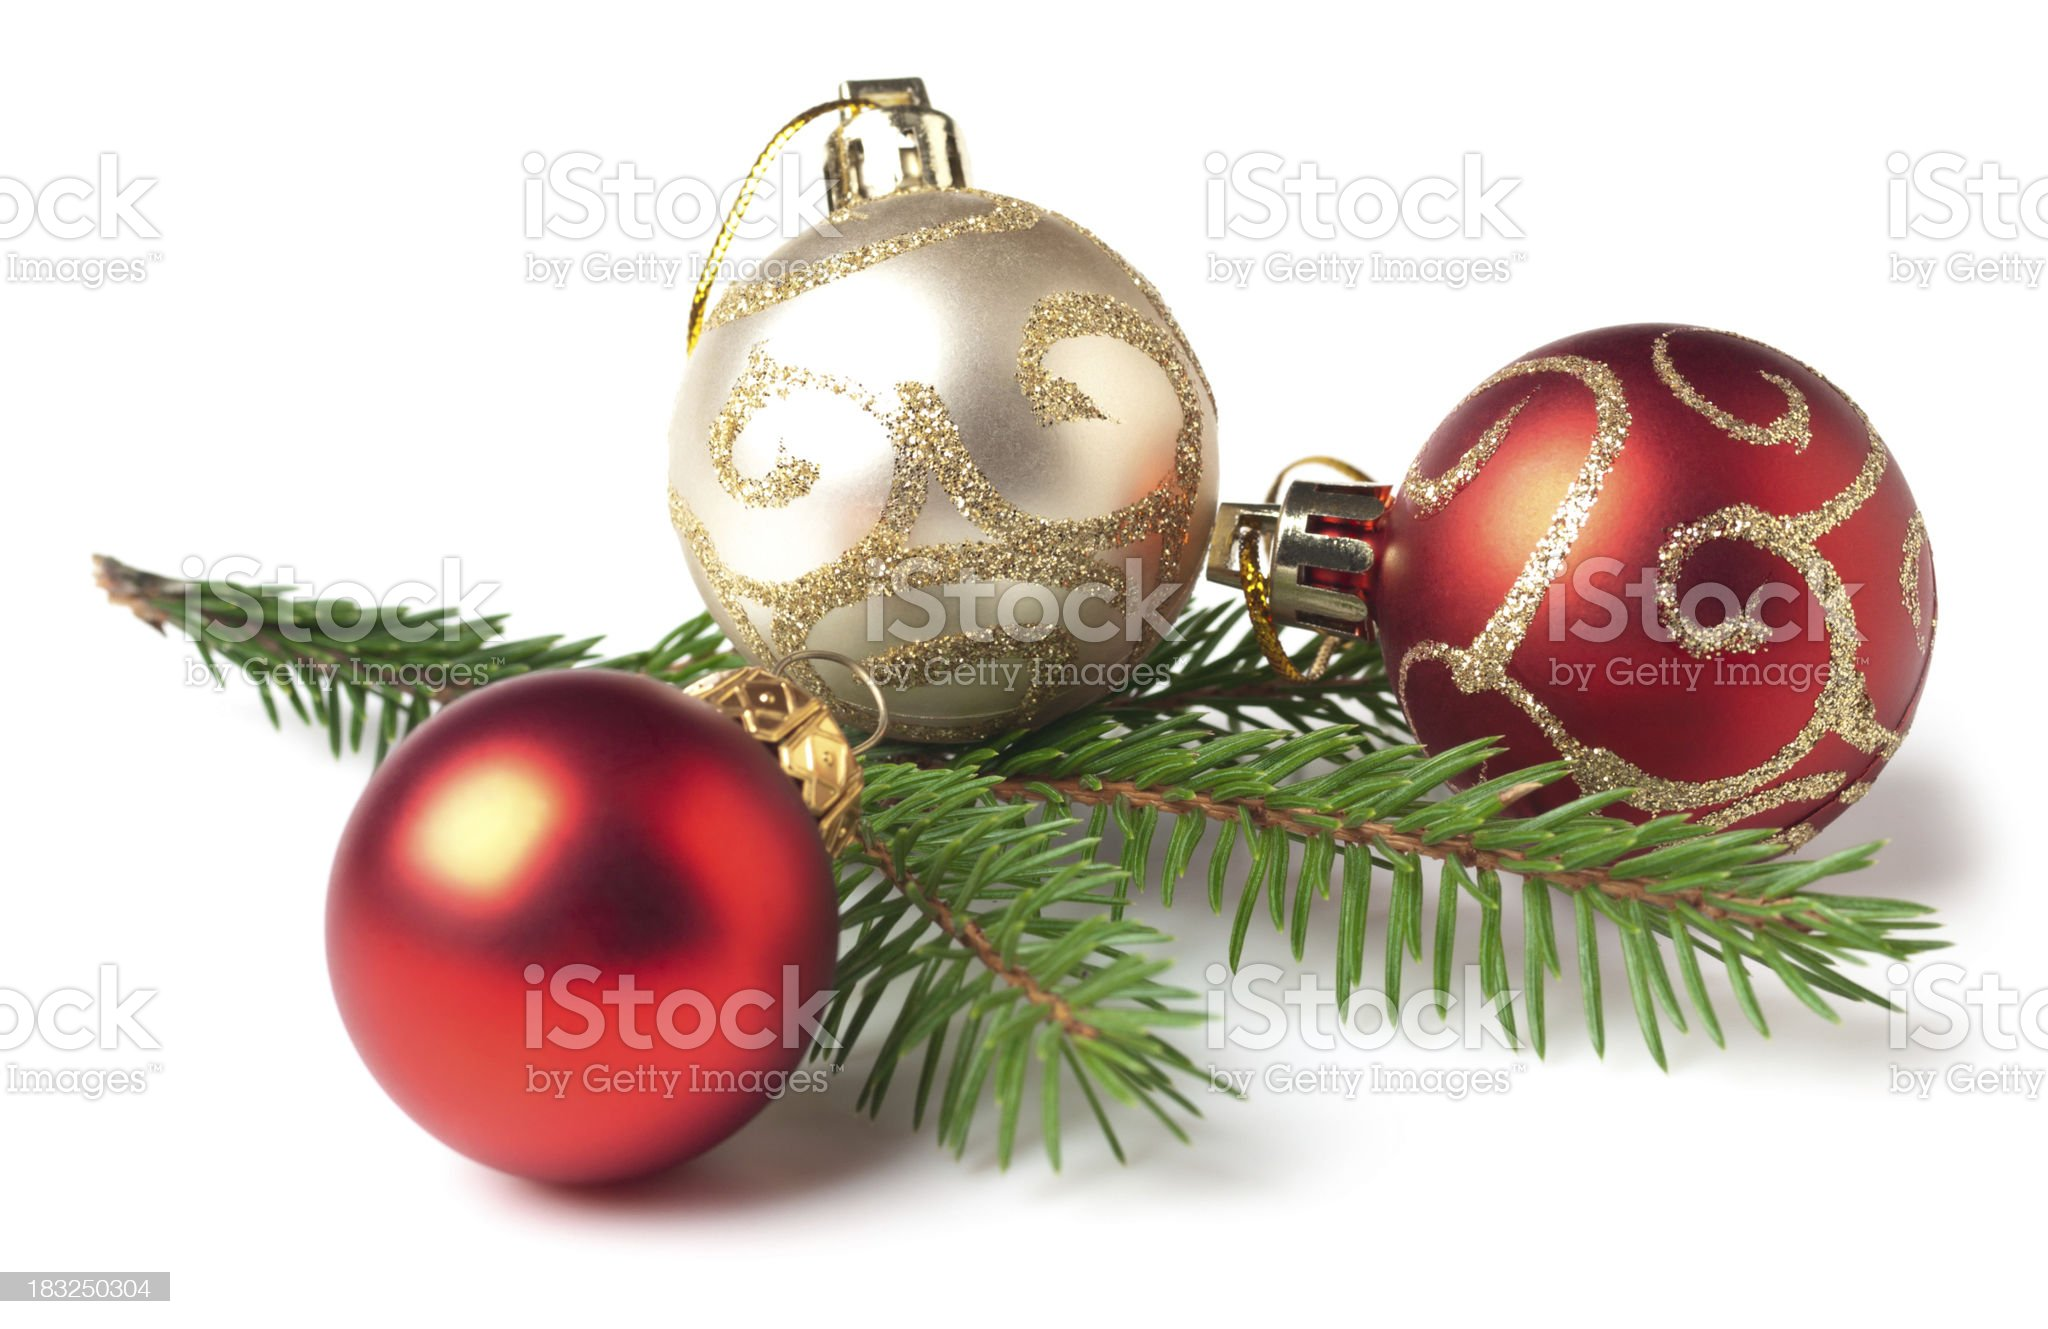 Red and white Christmas bulbs and tree branch royalty-free stock photo